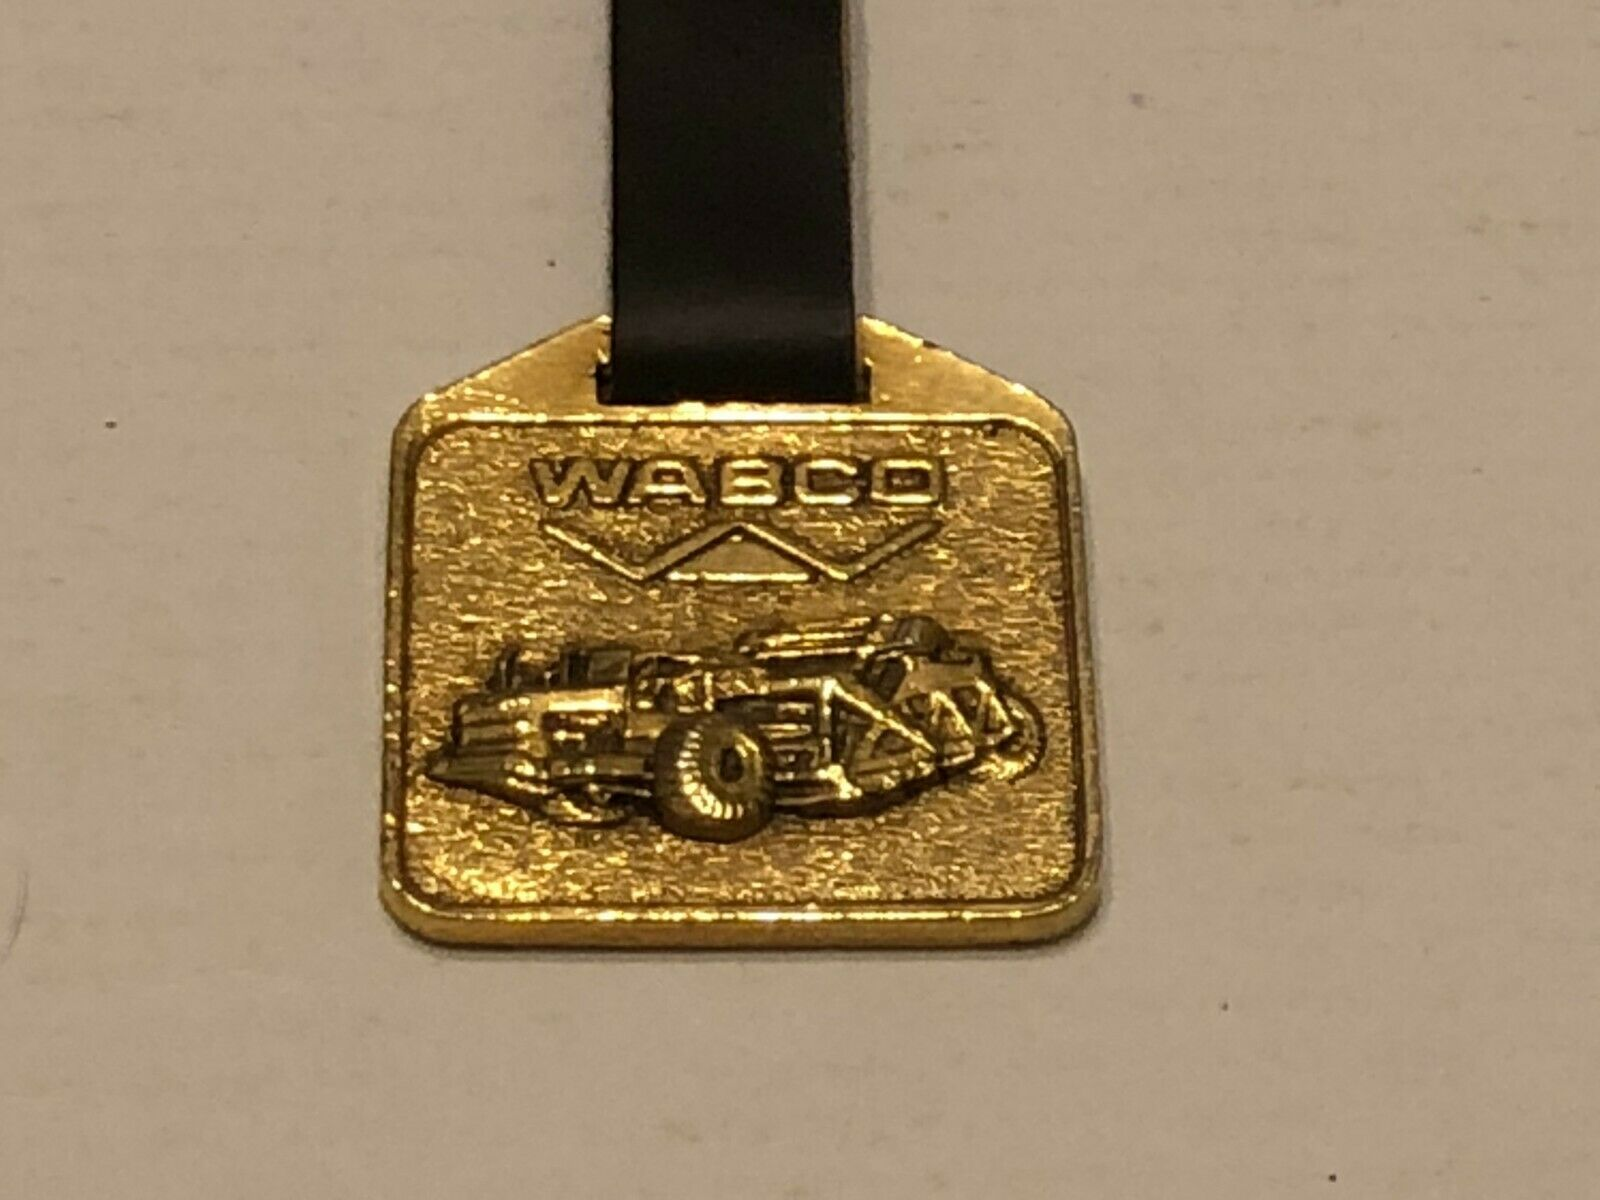 Vintage Watch Fob with Leather Strap - Wabco